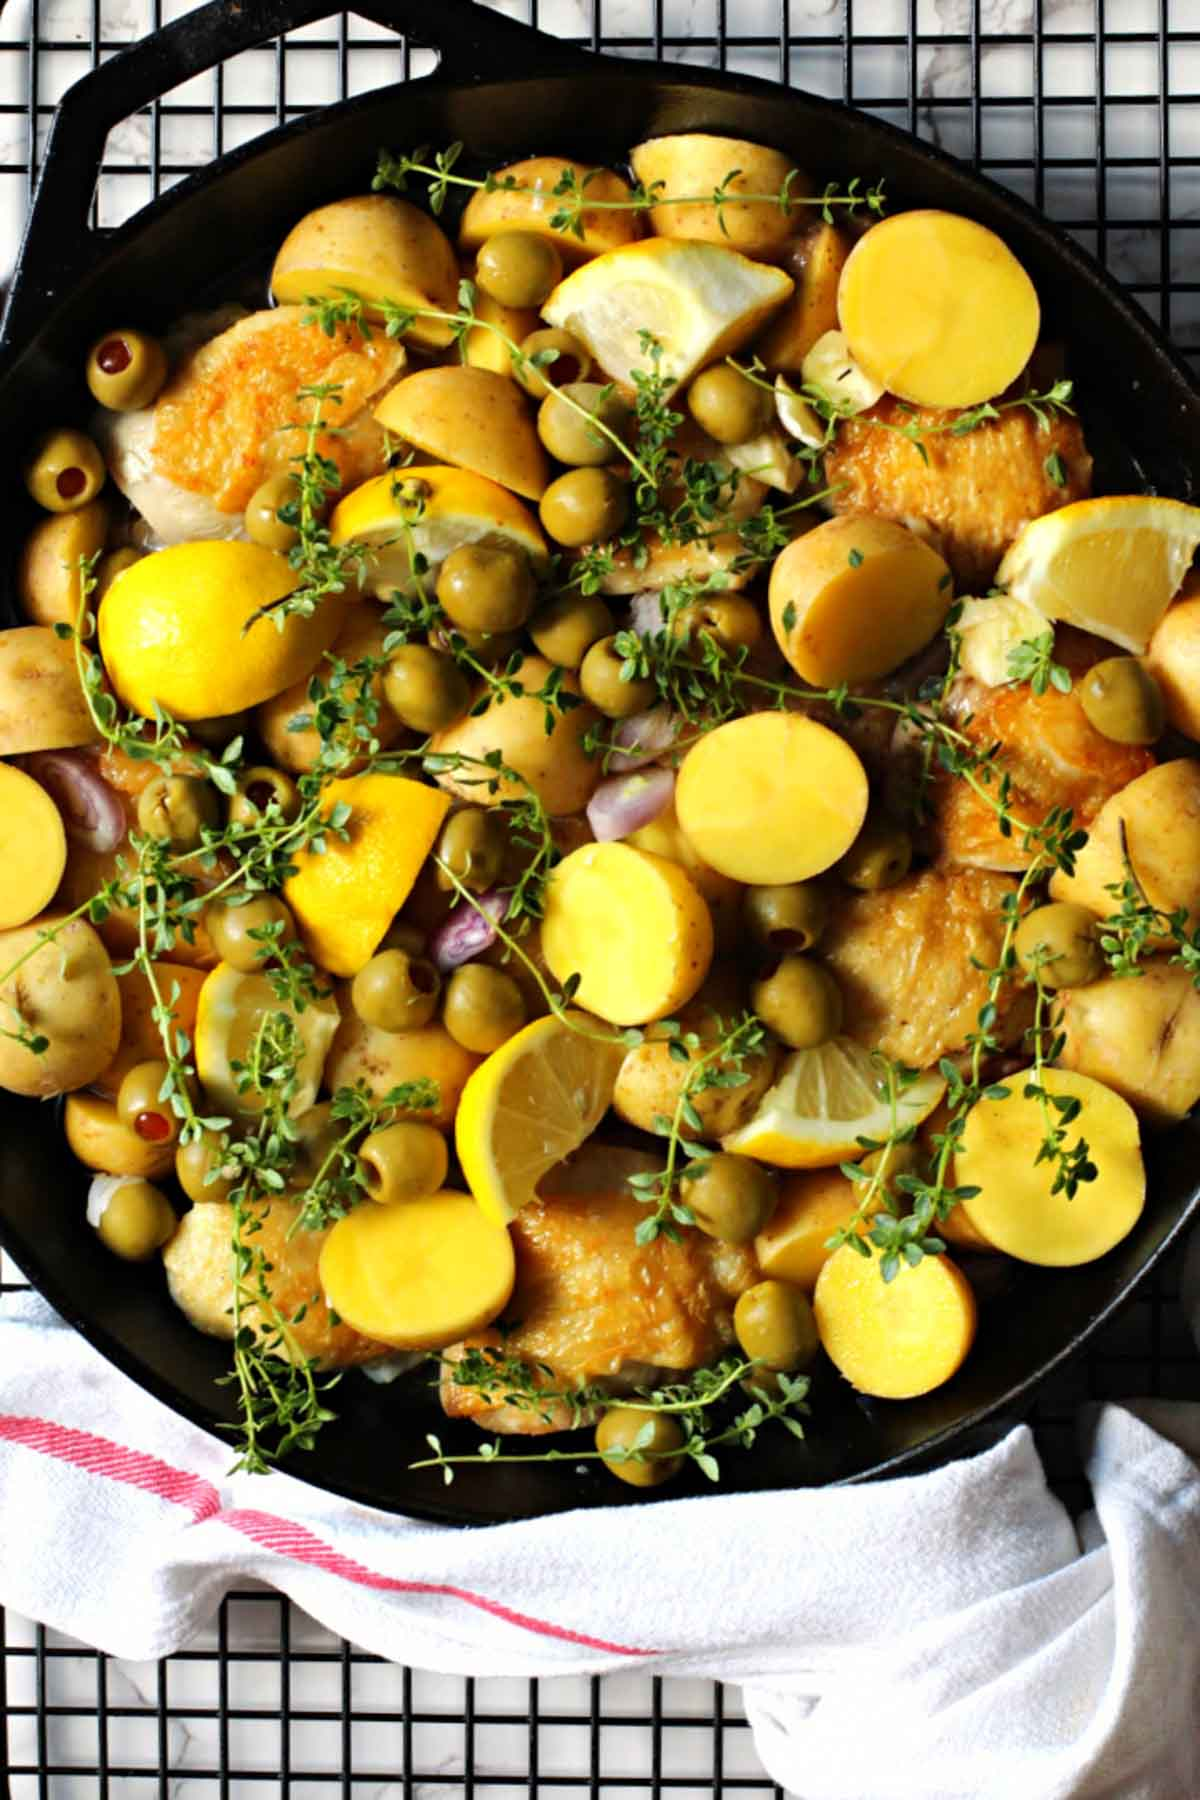 Yukon gold potatoes, chicken thighs, olives cooking in a cast iron skillet